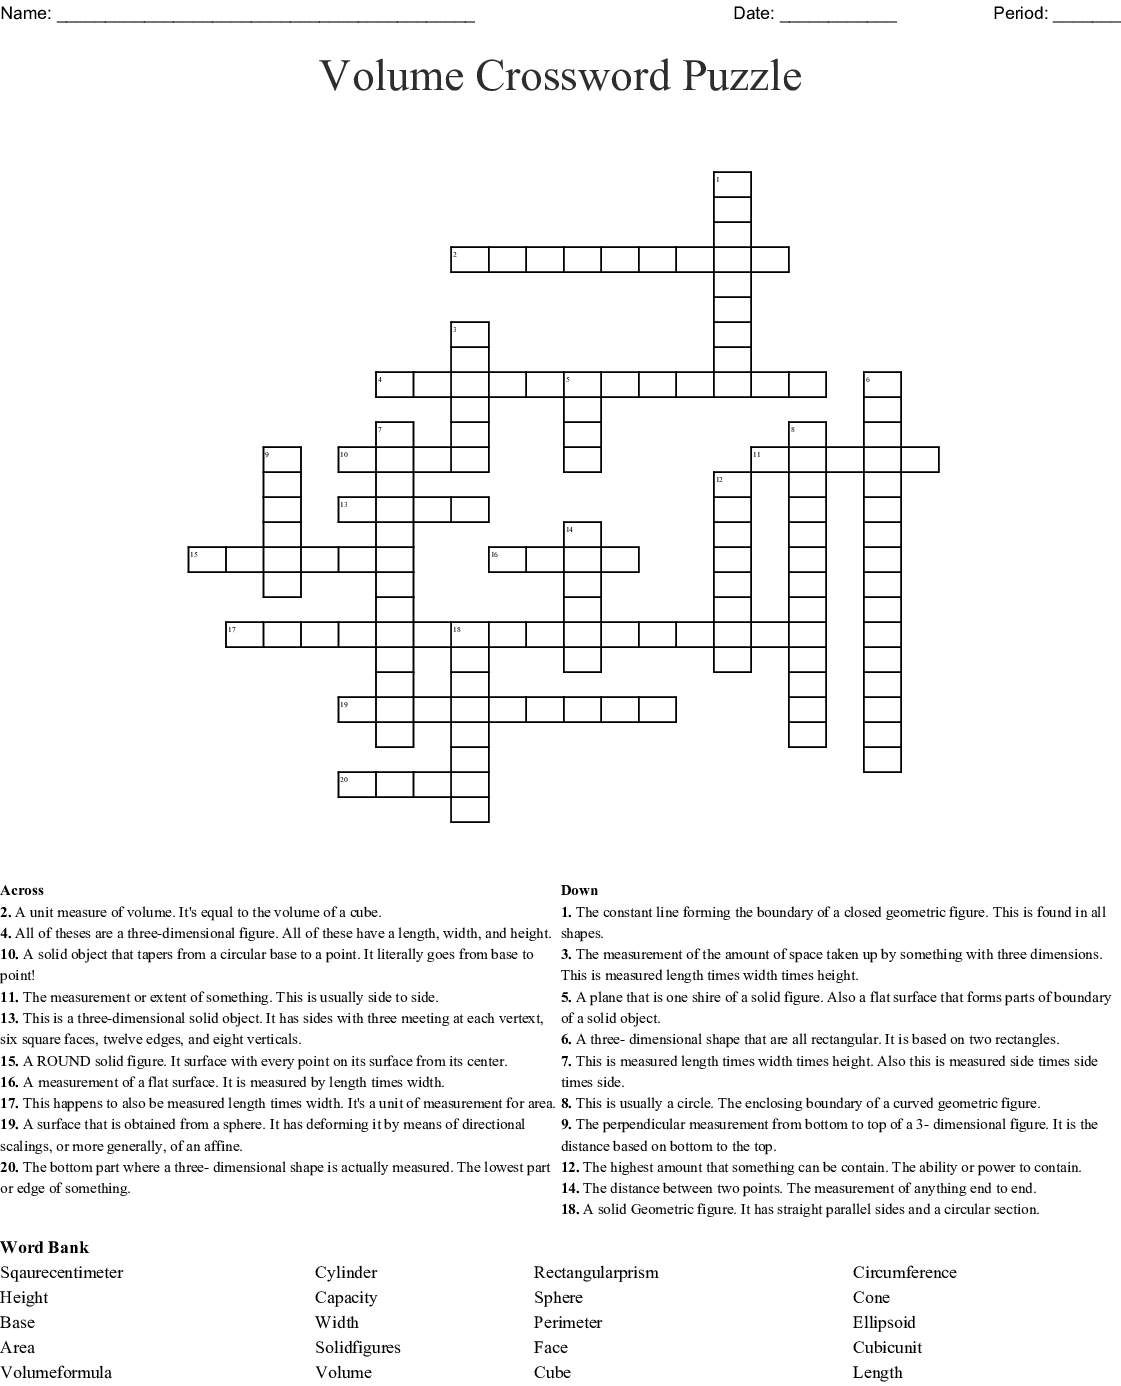 Surface Area And Volume Puzzle Crossword